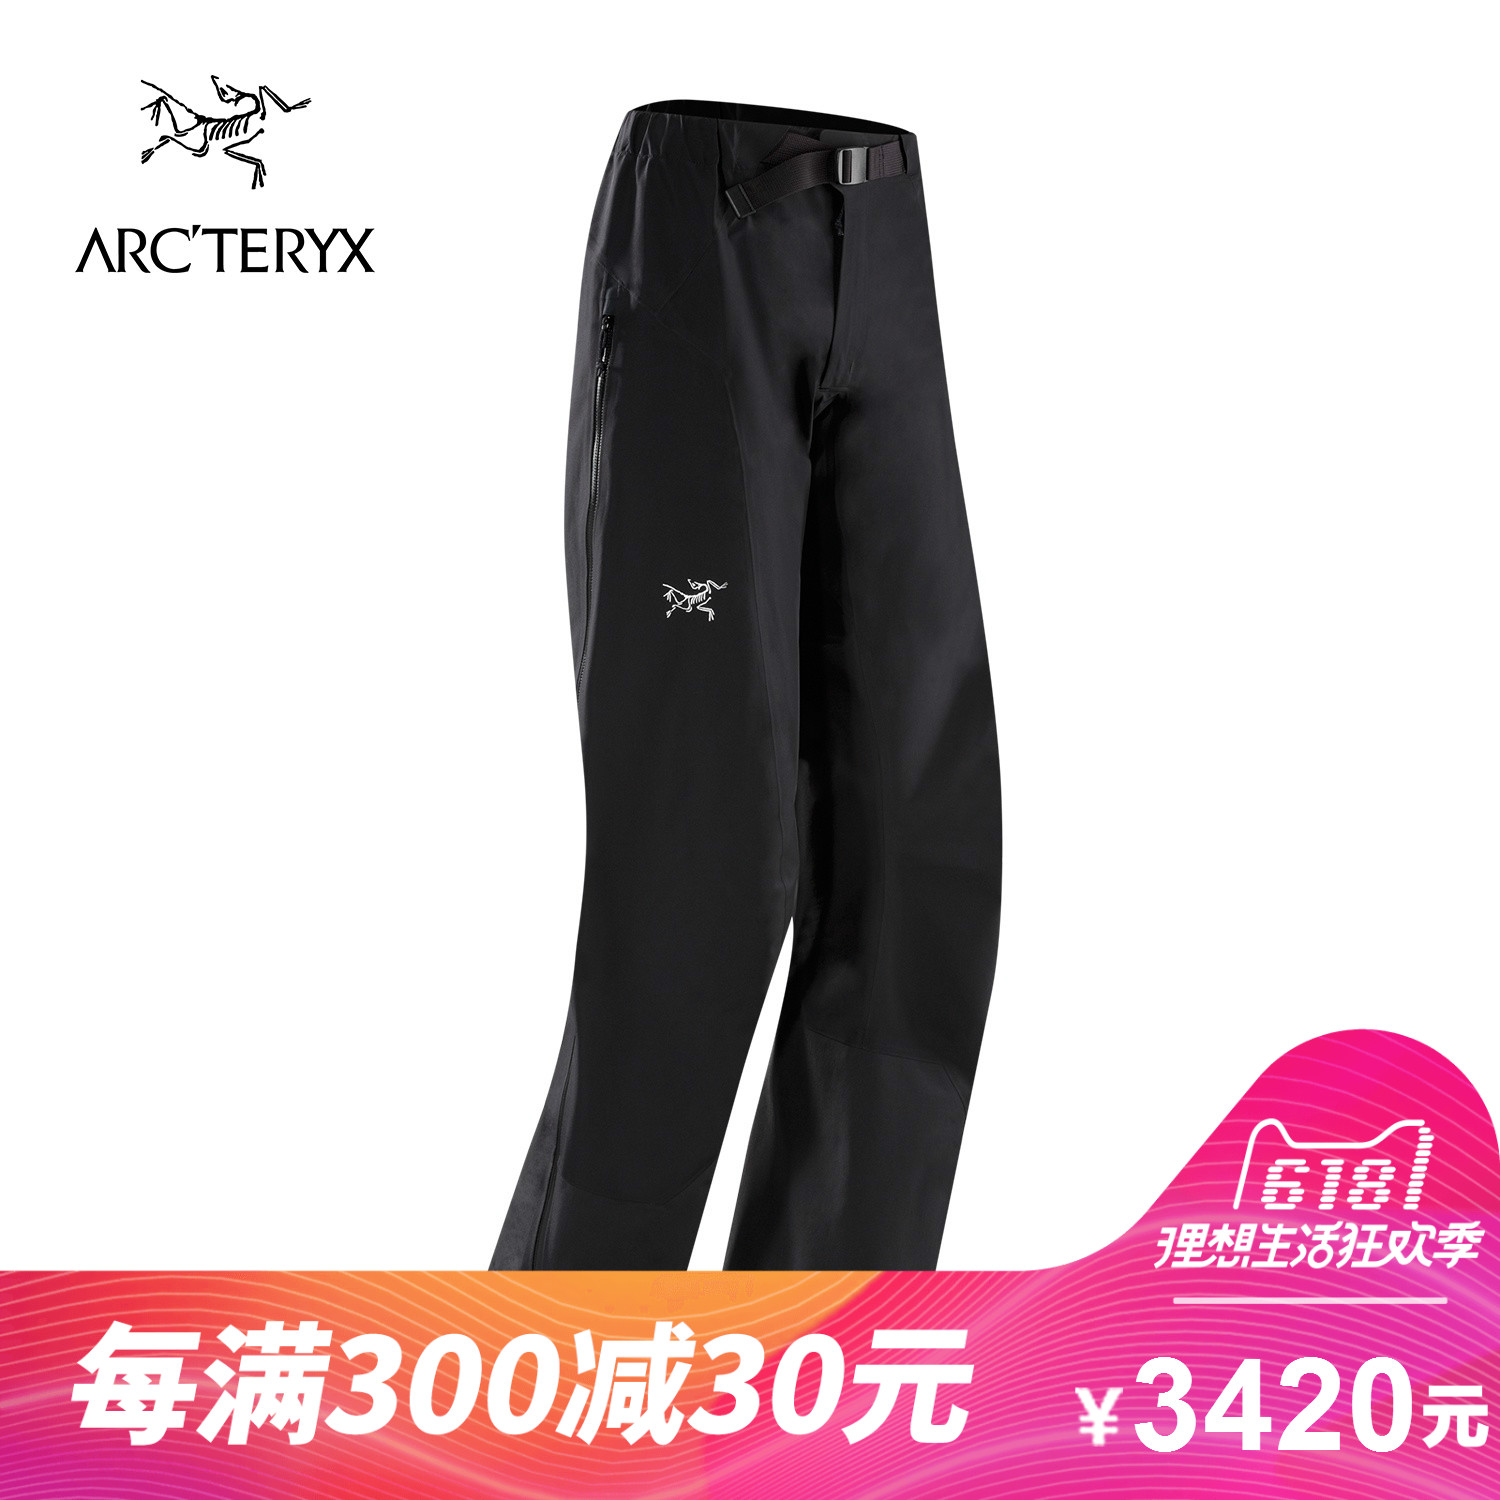 [The goods stop production and no stock]ARCTERYX / Archaeopteryx female models outdoor lightweight high breathable and durable walking Gore-Tex trousers Zeta LT 16290